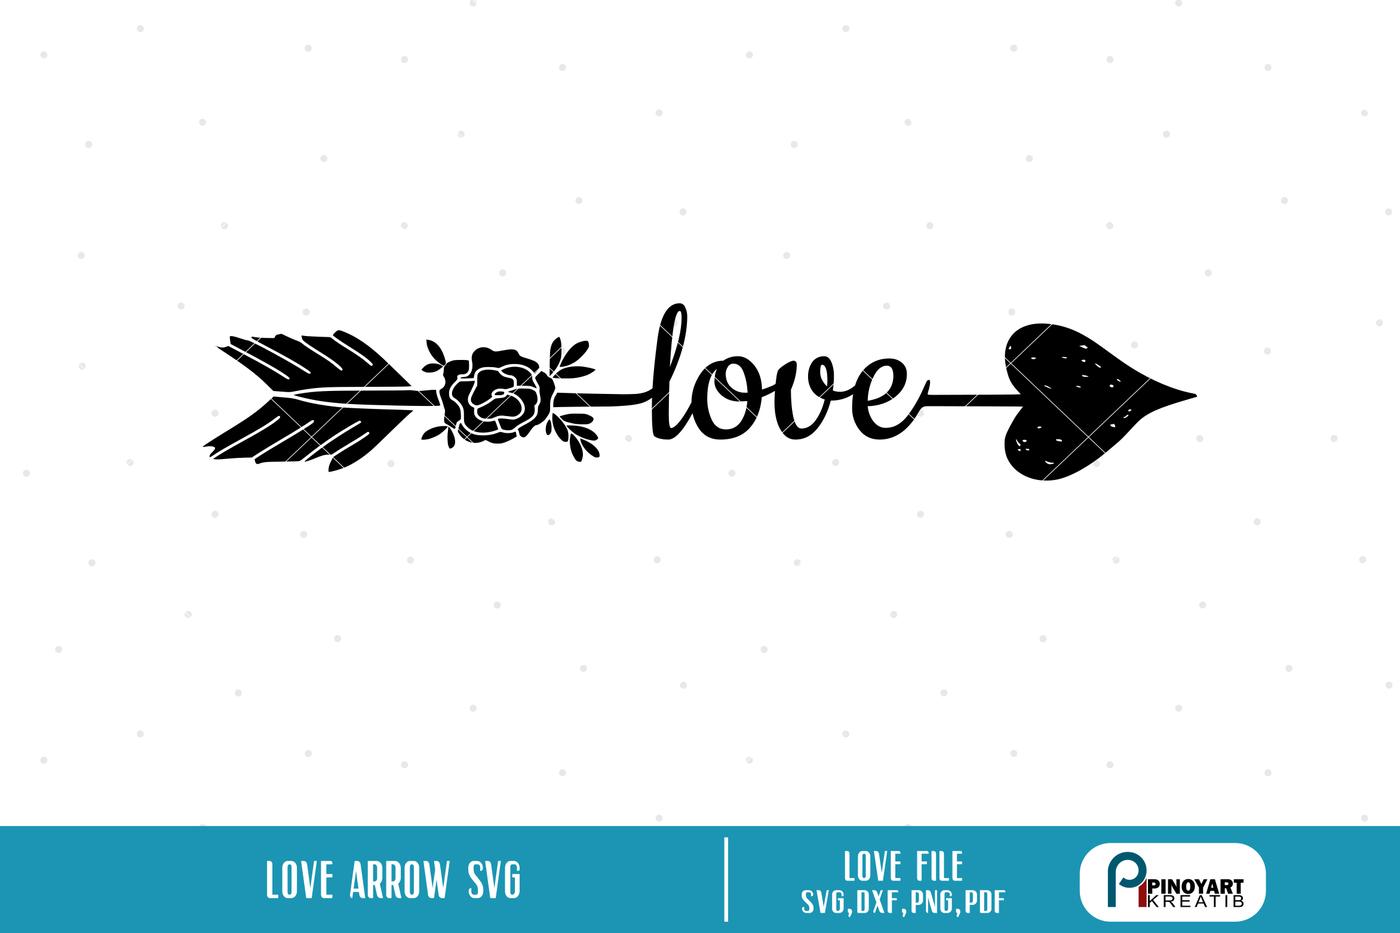 Love Svg File Arrow Svg File Love Svg Arrow Svg Arrow Dxf File Svg